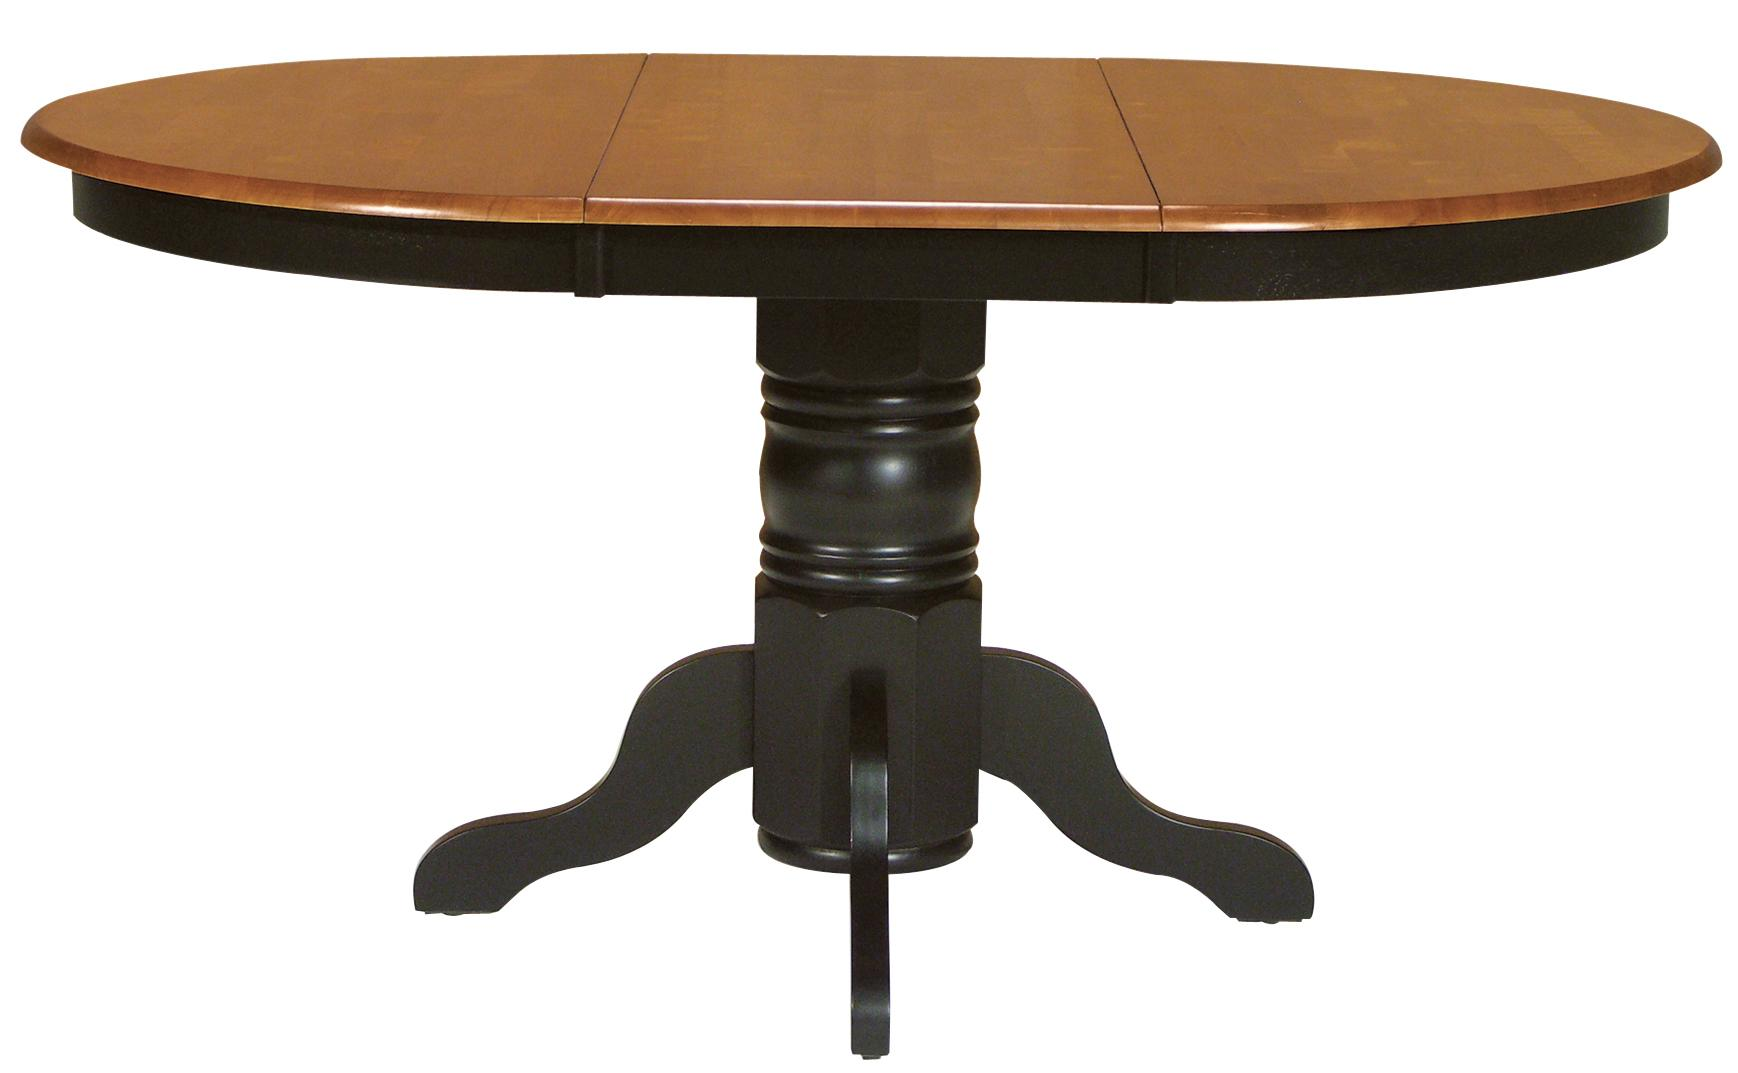 Two Toned Oval Dining Table with Turned Pedestal Base by Whitewood